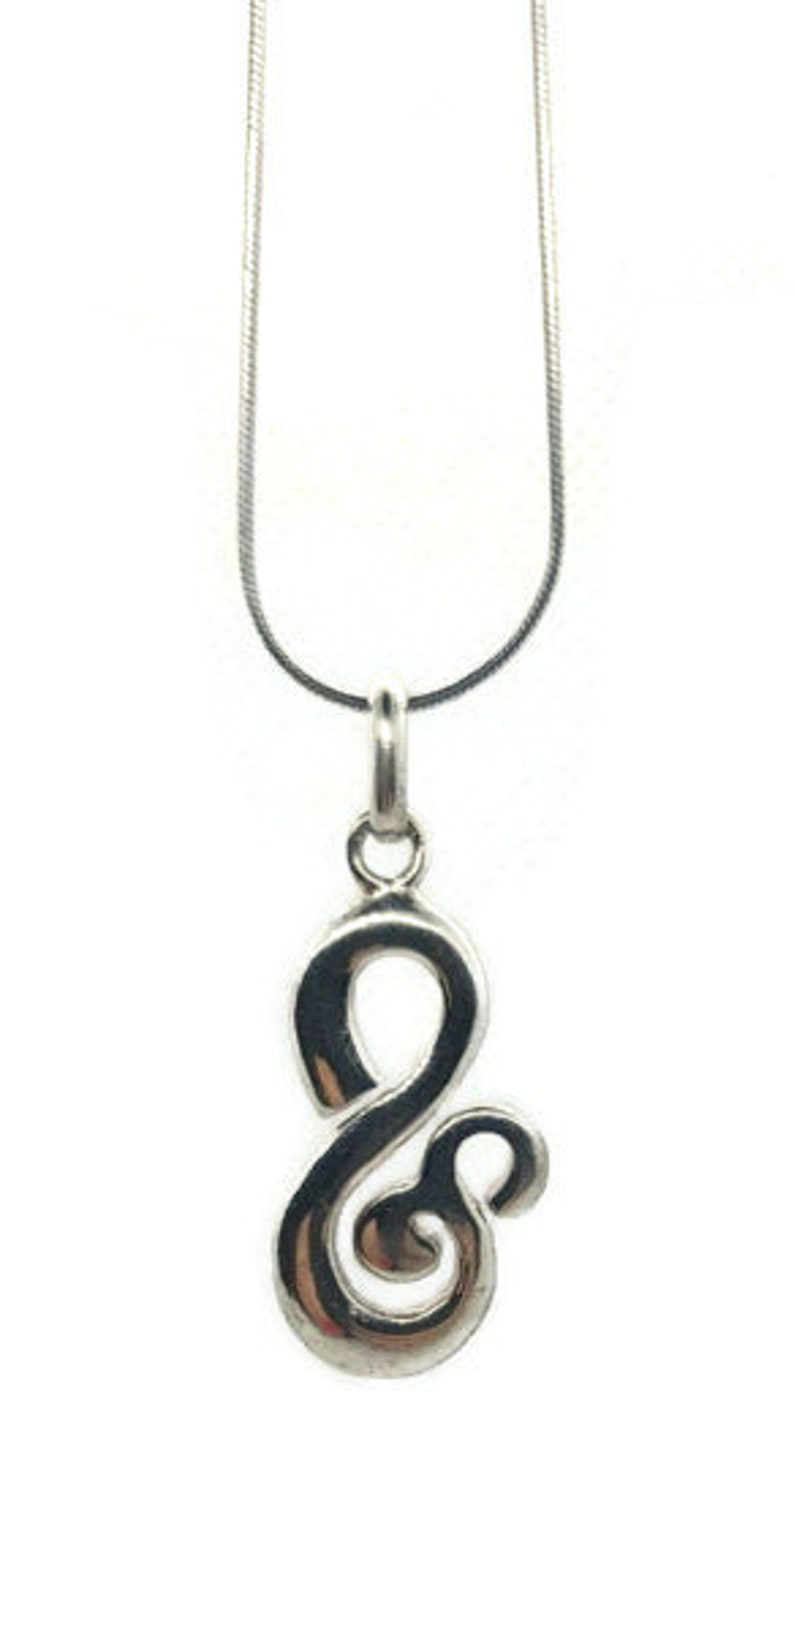 brand New 925 Sterling Silver Charm  Pendant